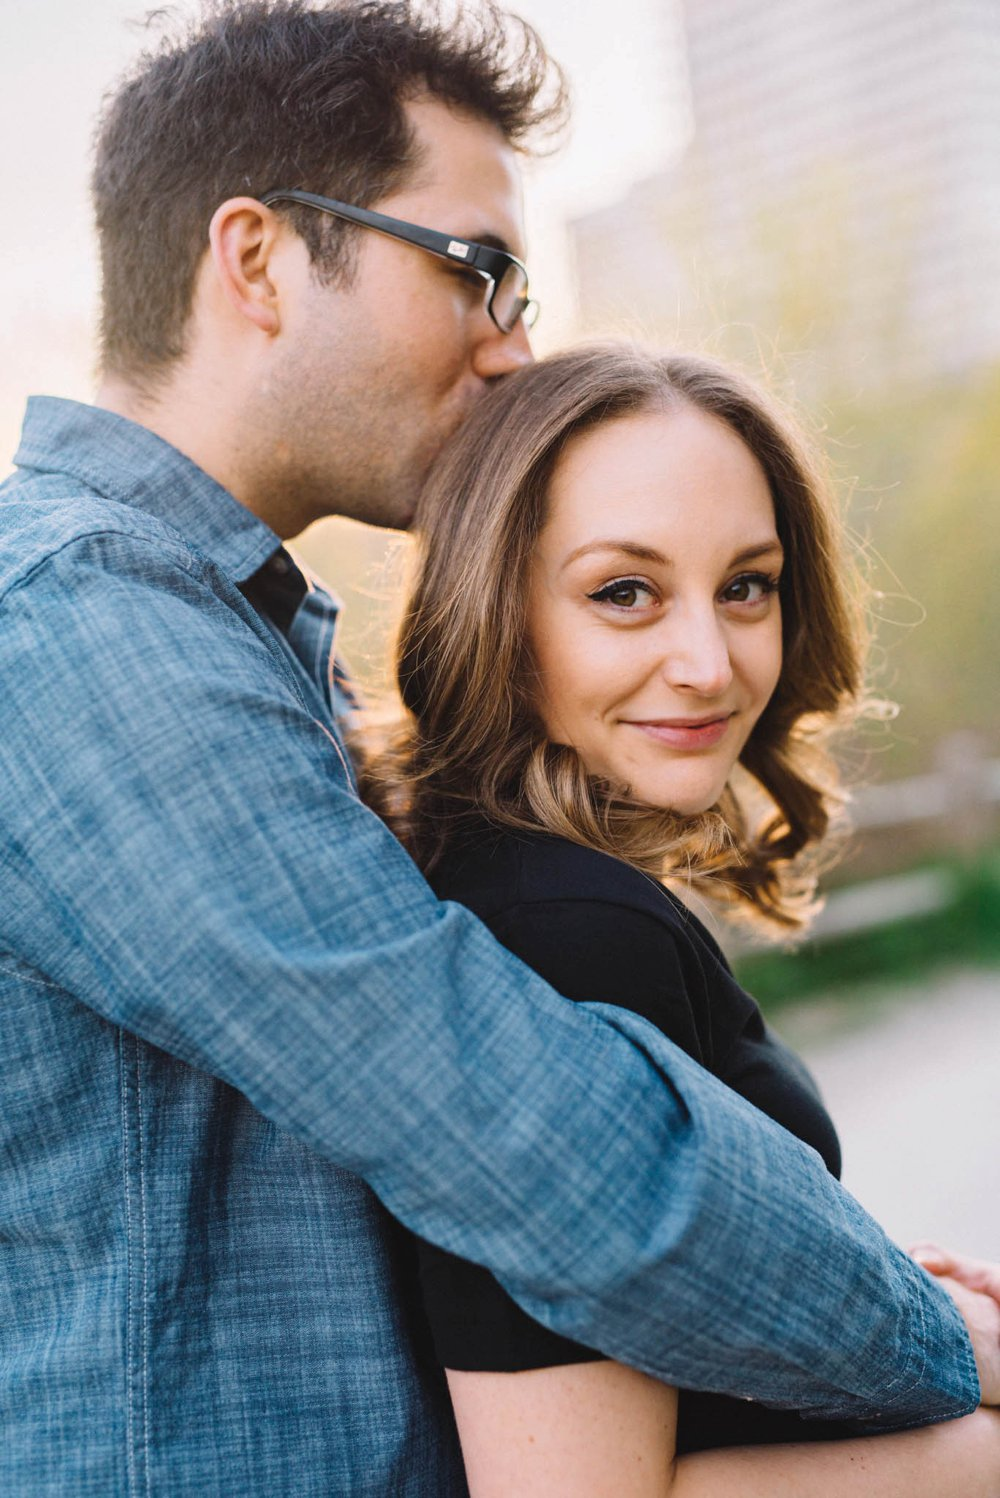 Toronto Park Engagement Session | Olive Photography